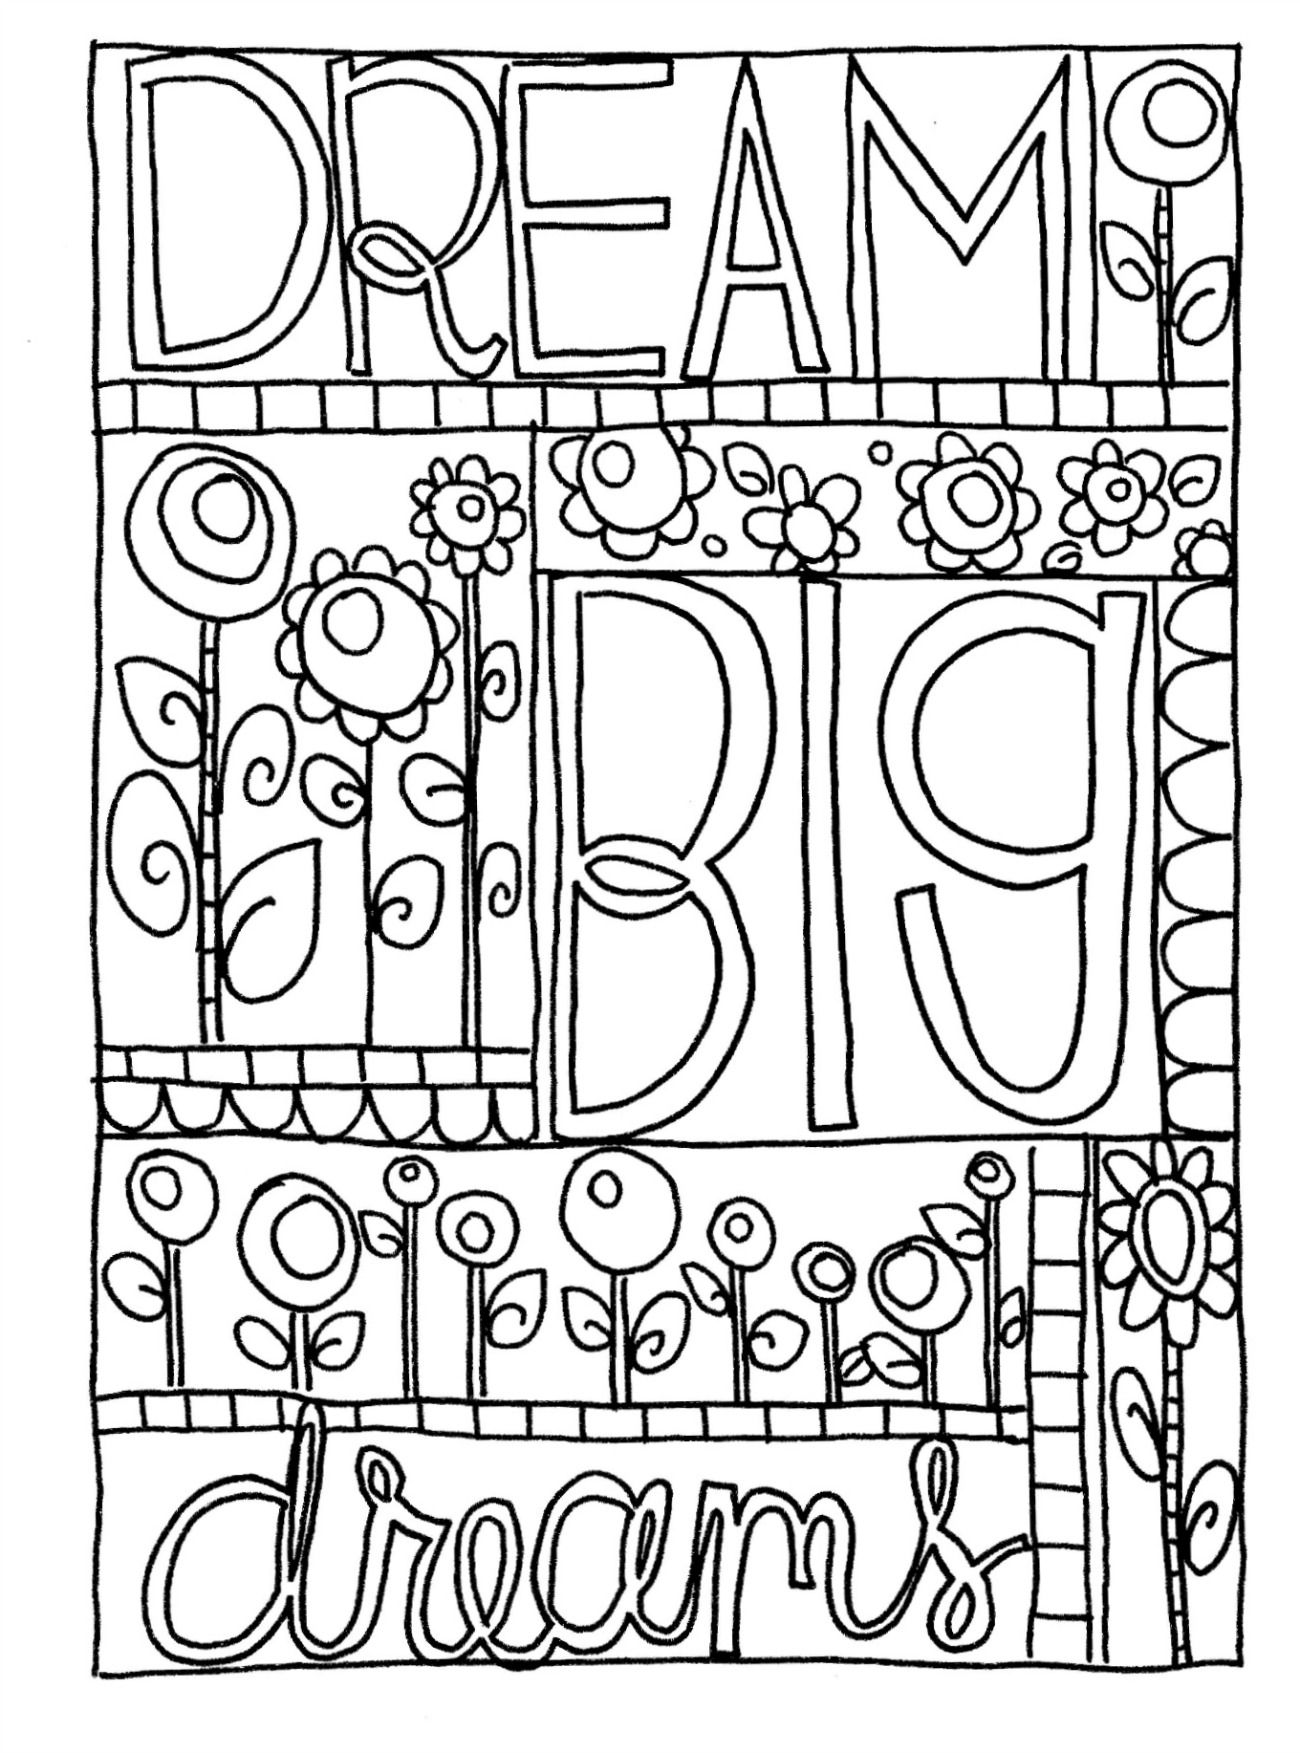 doodle coloring pages get this fun doodle art adult coloring pages printable 12bh9 pages coloring doodle